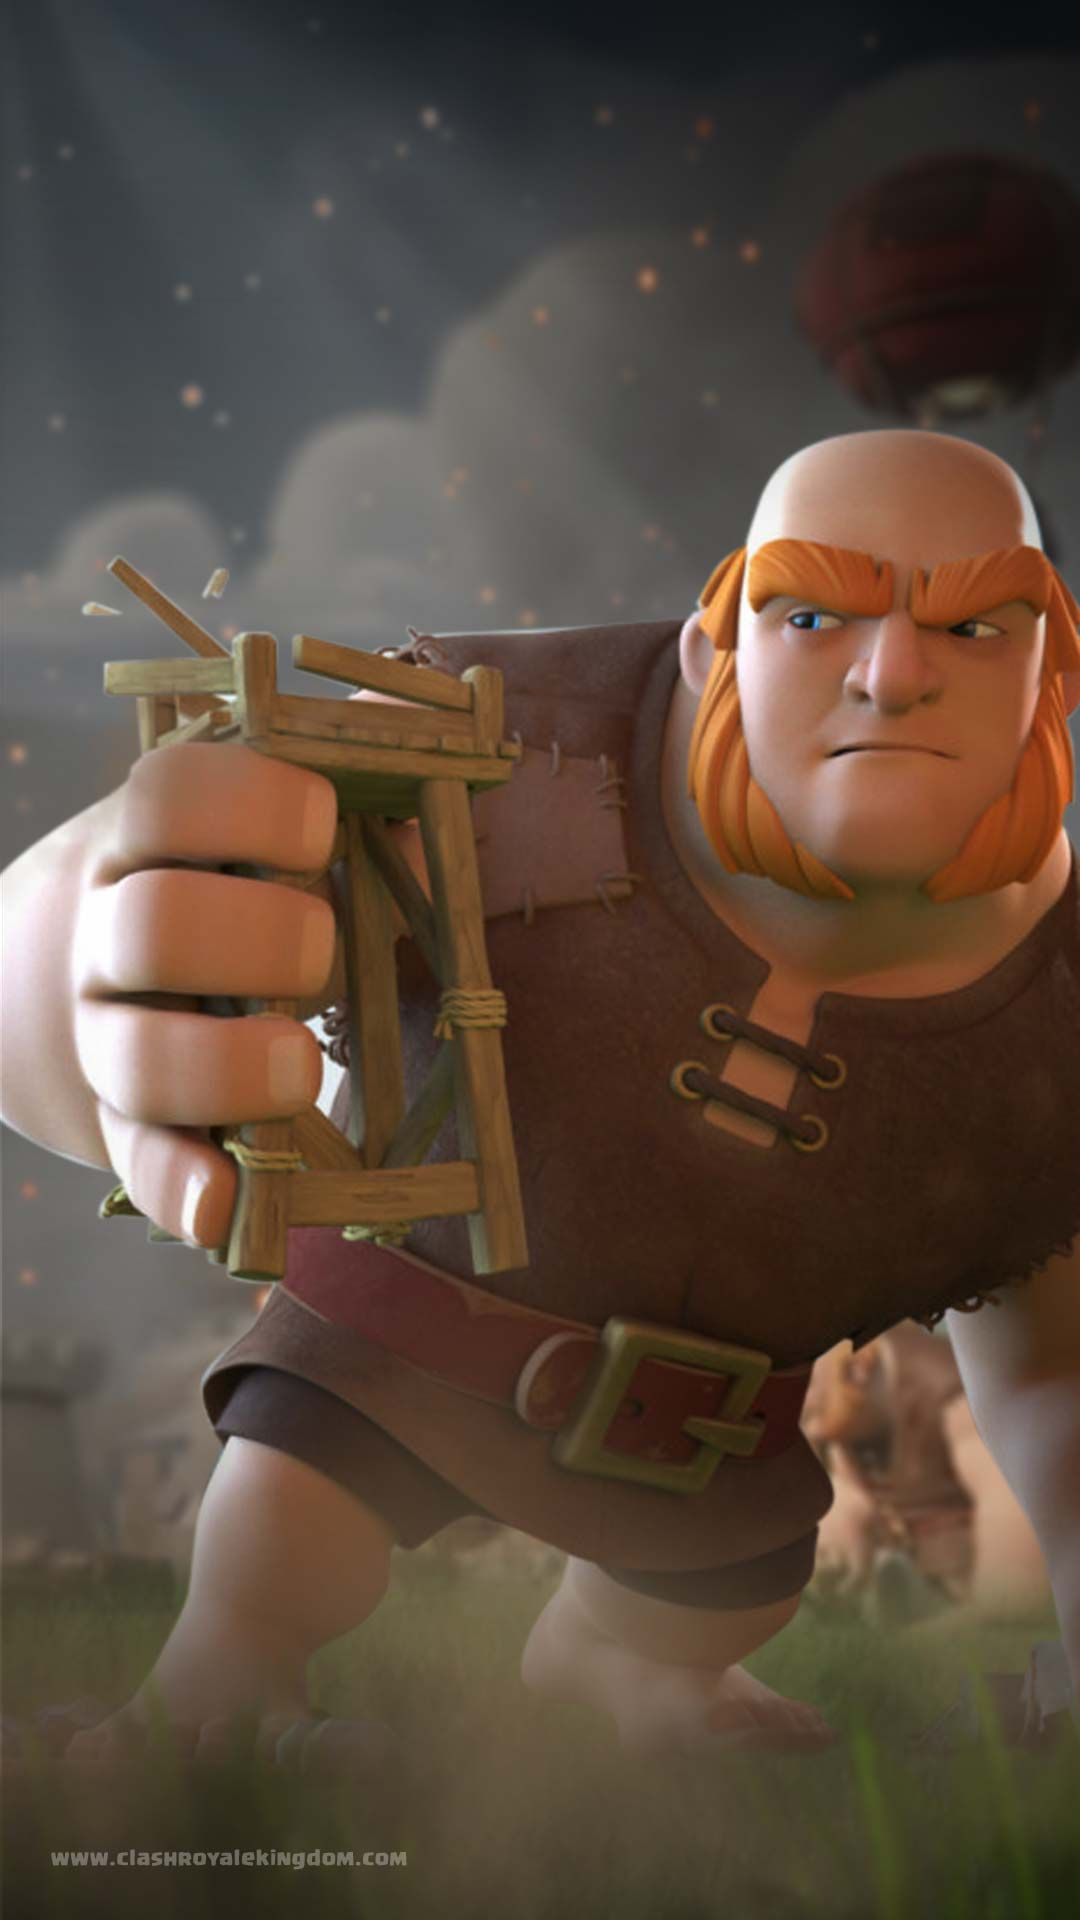 Giant Crushing Wallpaper Download High Quality Clash Royale Wallpaper Now Get It For Free Clash Royale Wallpaper Clash Royale Clash Of Clans Attacks